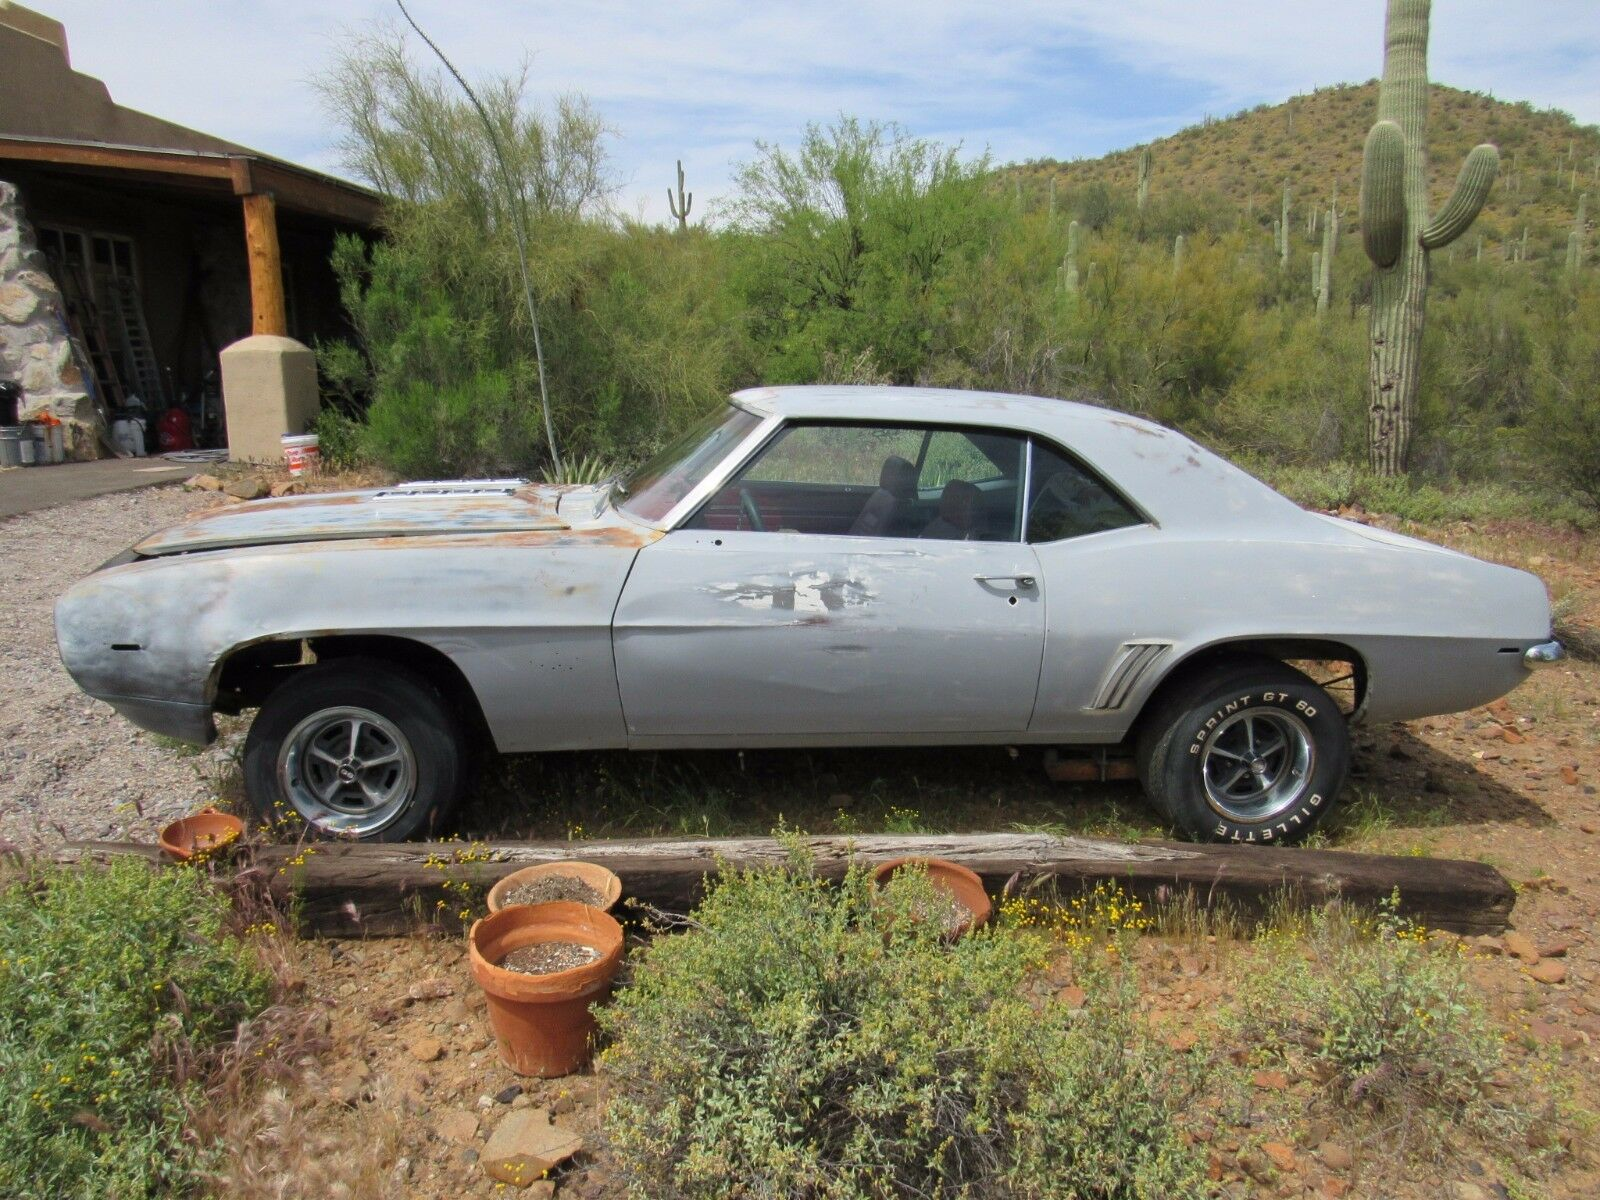 1969 Chevrolet Camaro Ss 396 Project Car Used Chevrolet